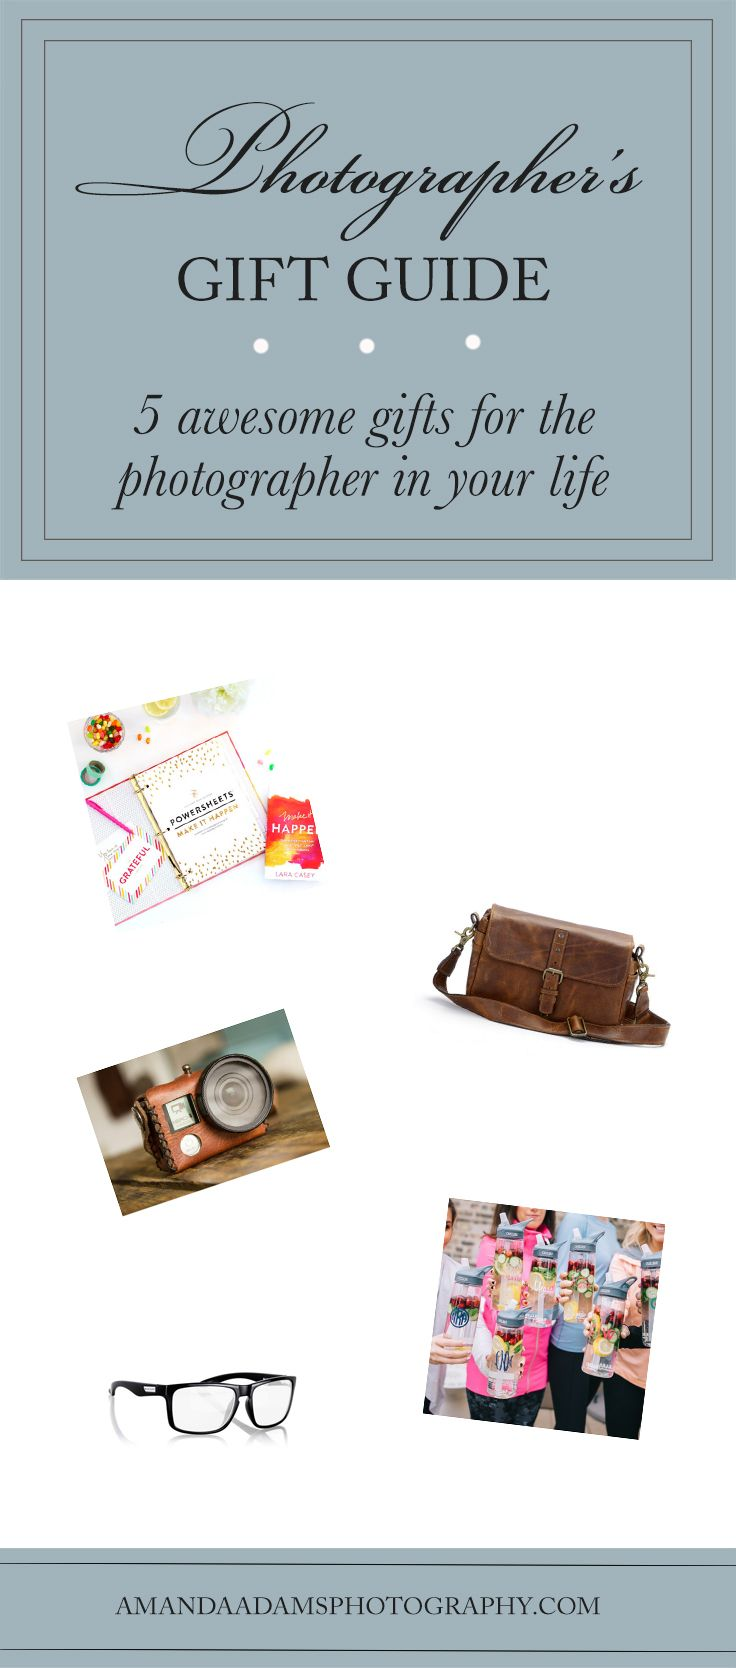 5 Awesome Gifts for the Photographer in Your Life | Photographer's Gift Guide | Amanda Adams Photography